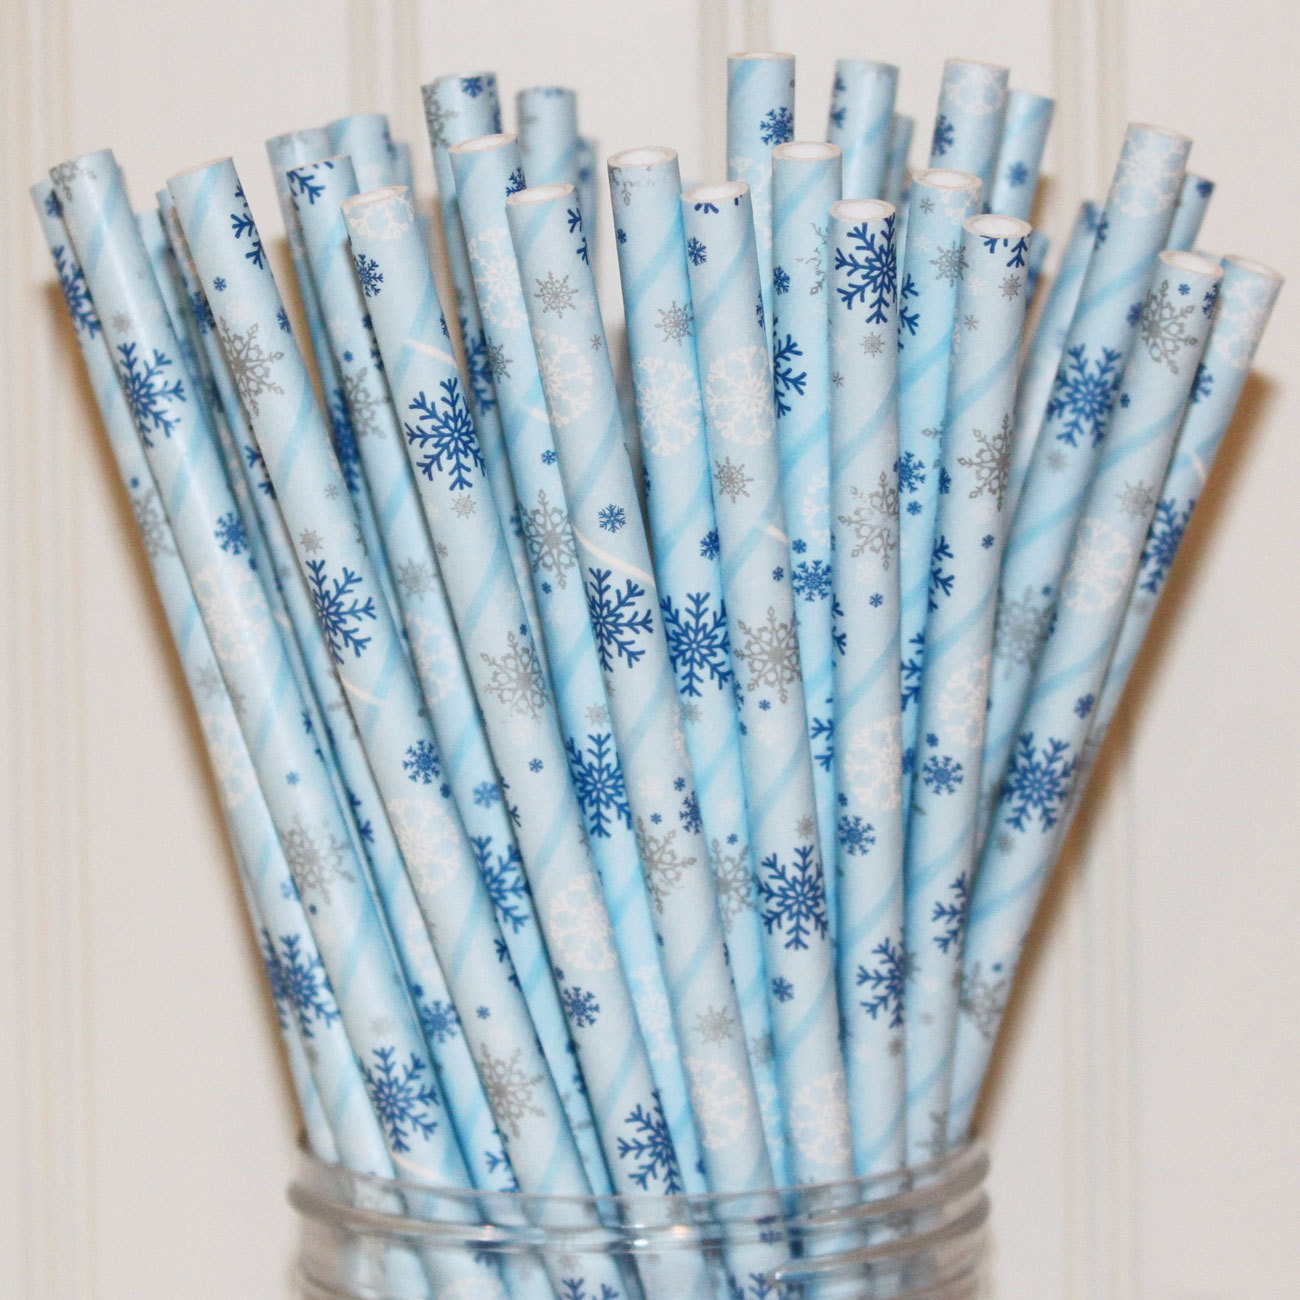 Snowflake party straws from Etsy shop The Party Fairy